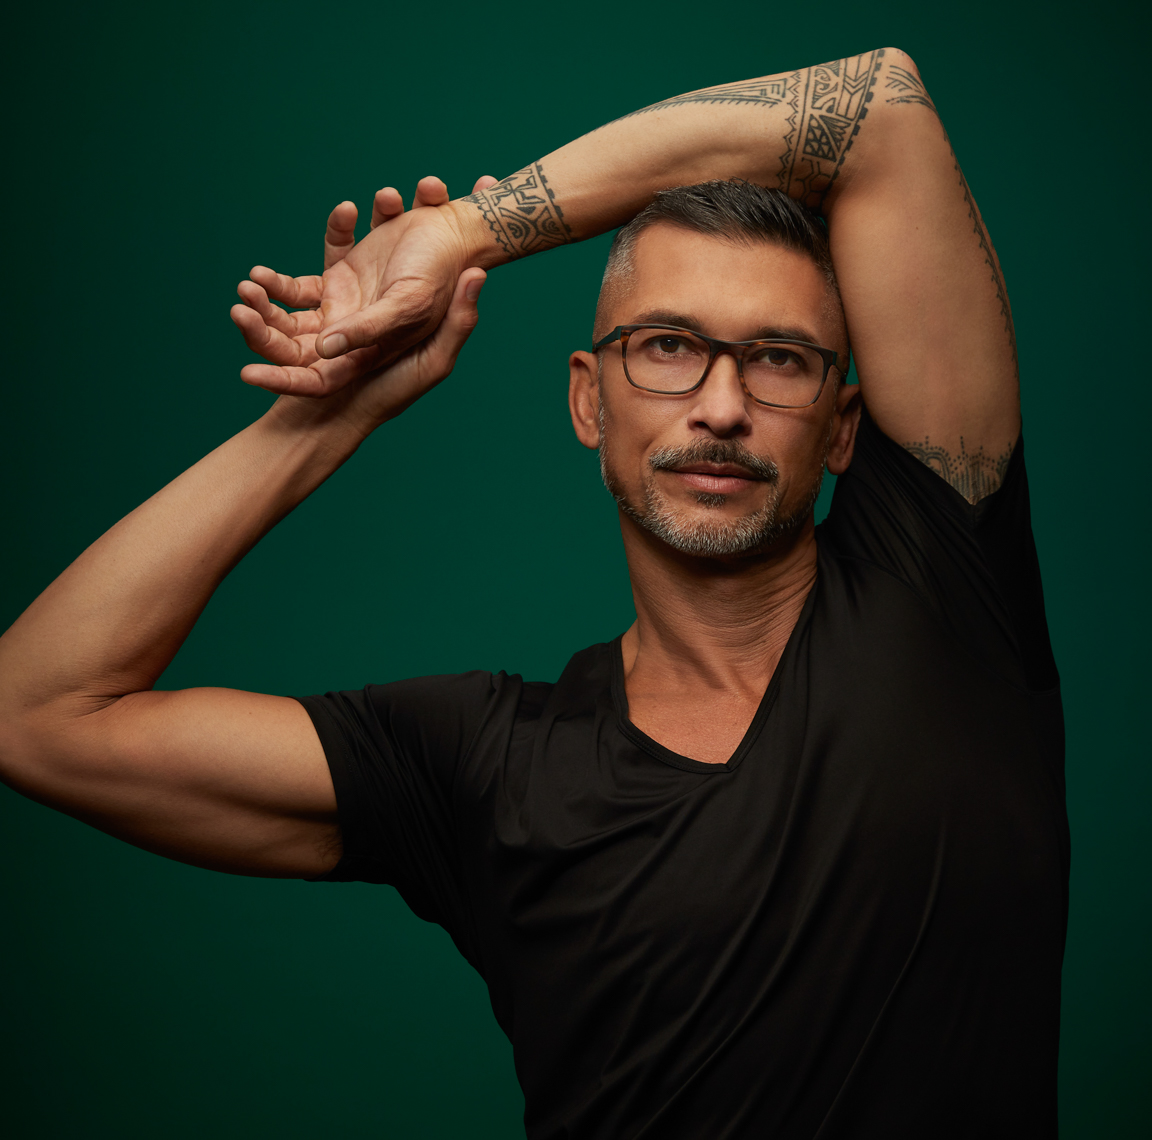 tatooed man with black t-shirtshort hair and elbo above his head hands clasped and glasses eyewear